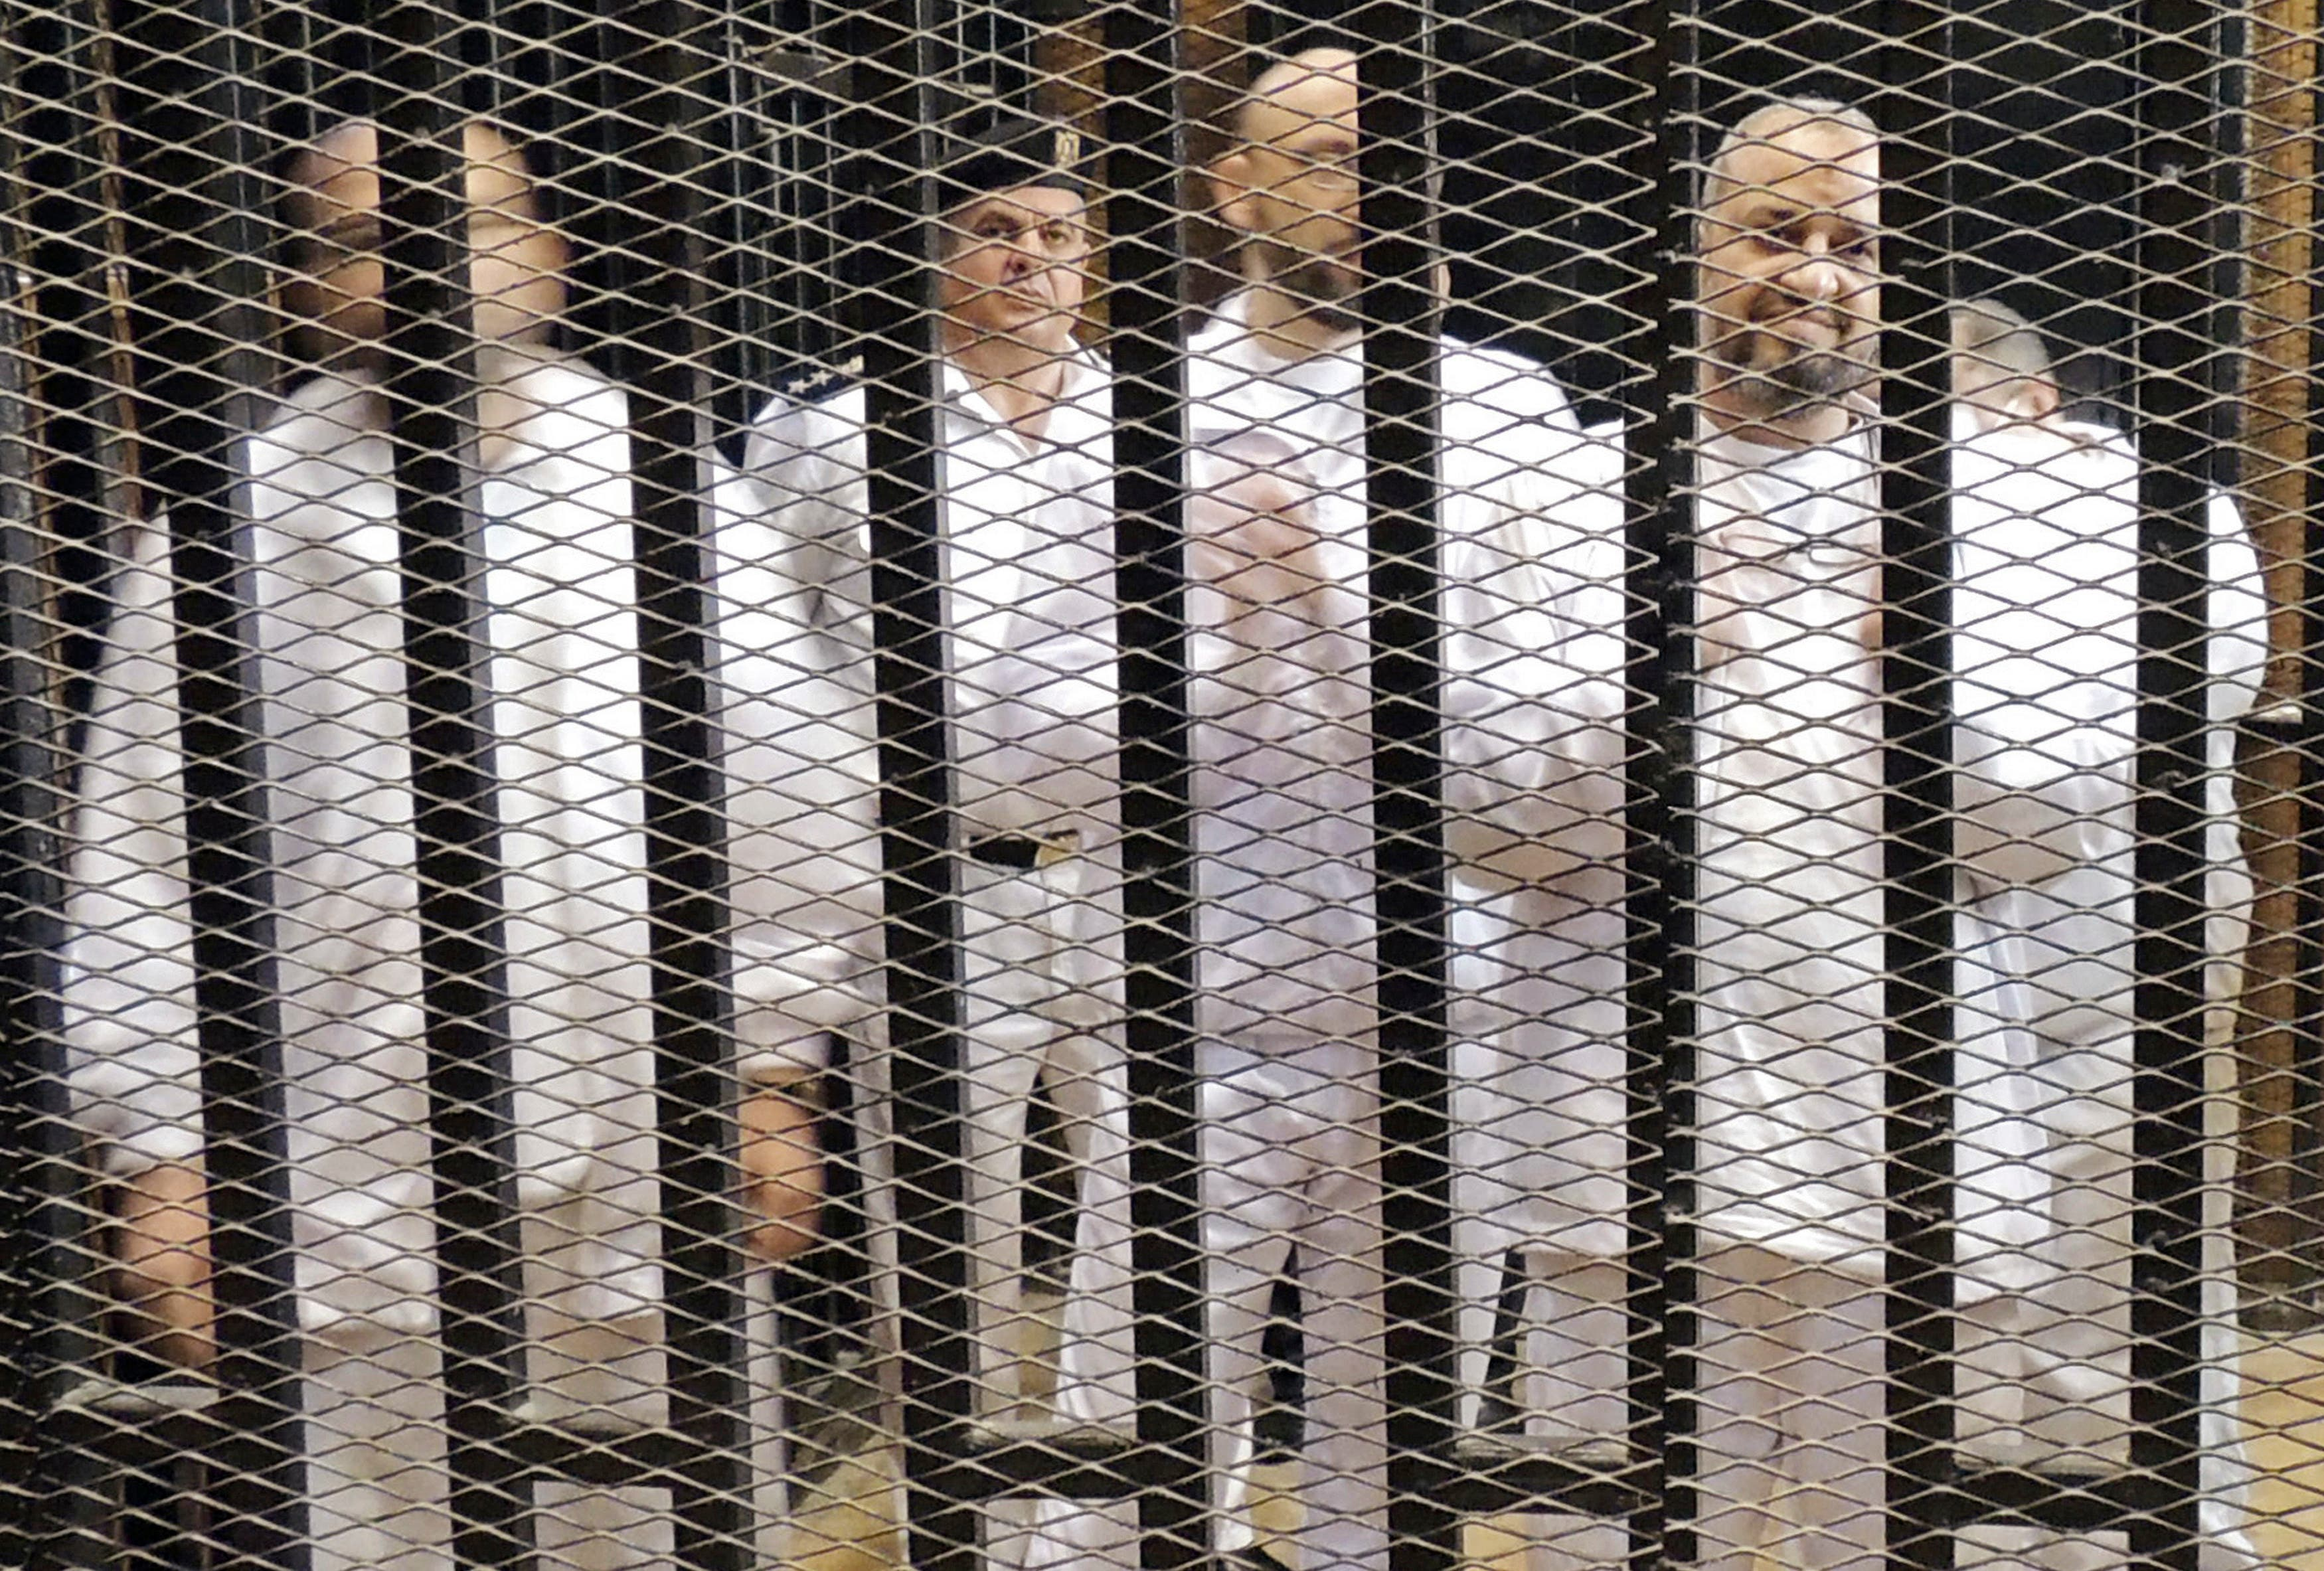 Muslim Brotherhood leader Mohamed El-Beltagy (R) stands with other senior figures in a cage in a courthouse on the first day of their trial in Cairo November 4, 2013. reuters